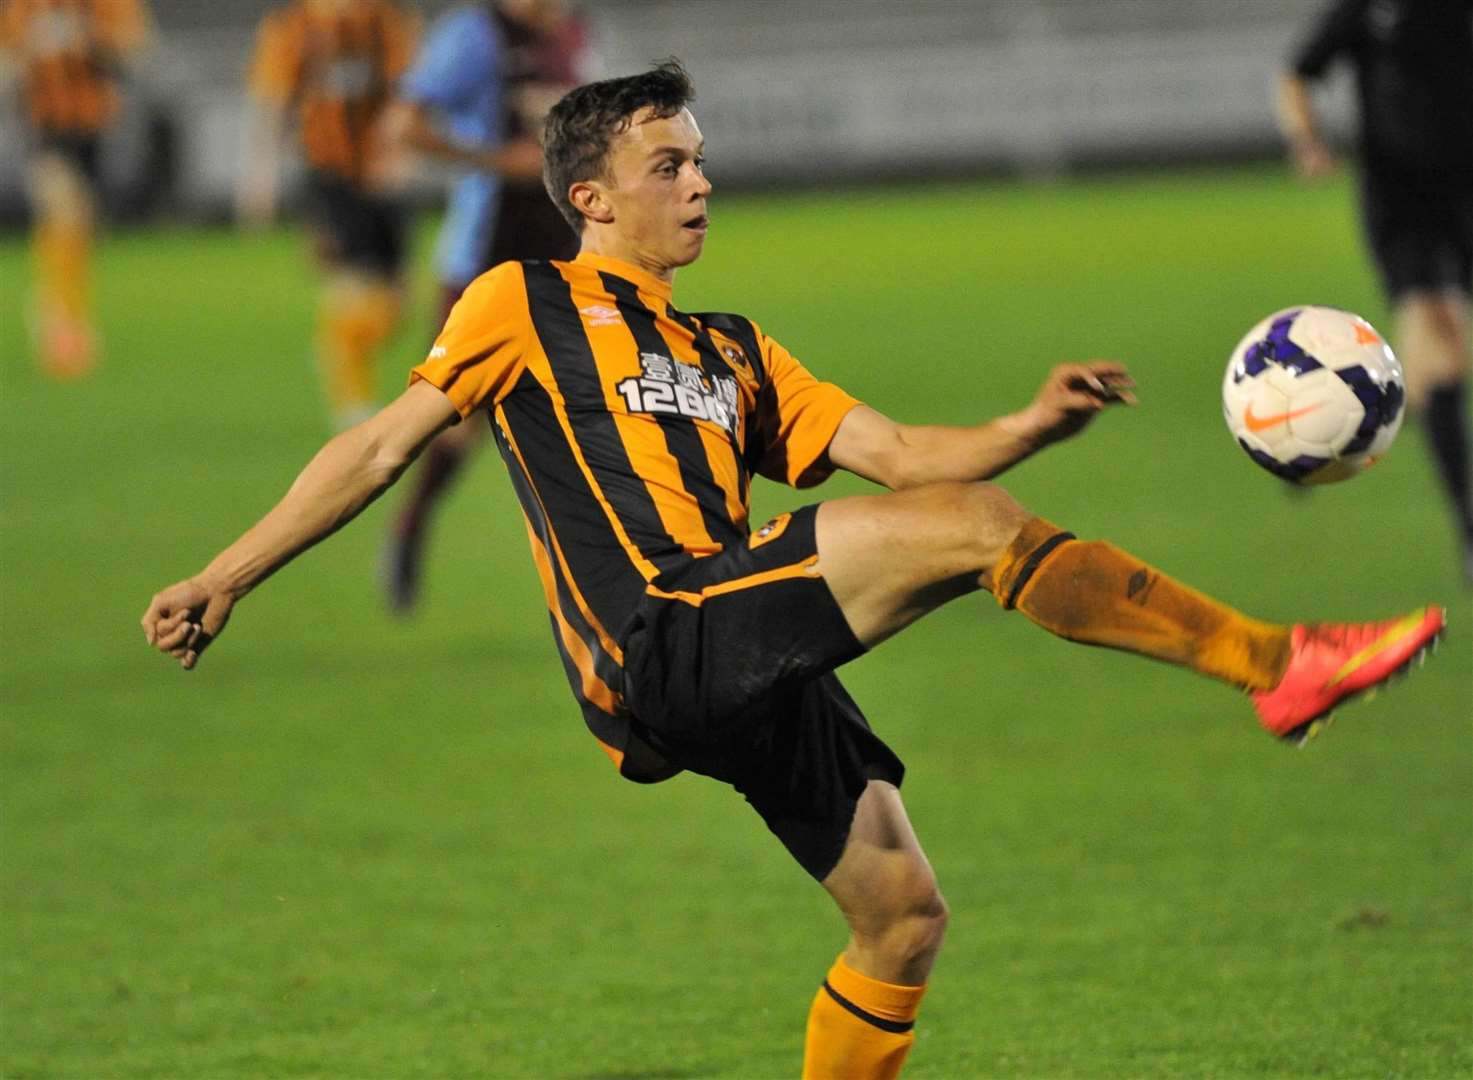 Johan ter Horst in action for Hull's under-23s Picture: Jack Harland/Hull City